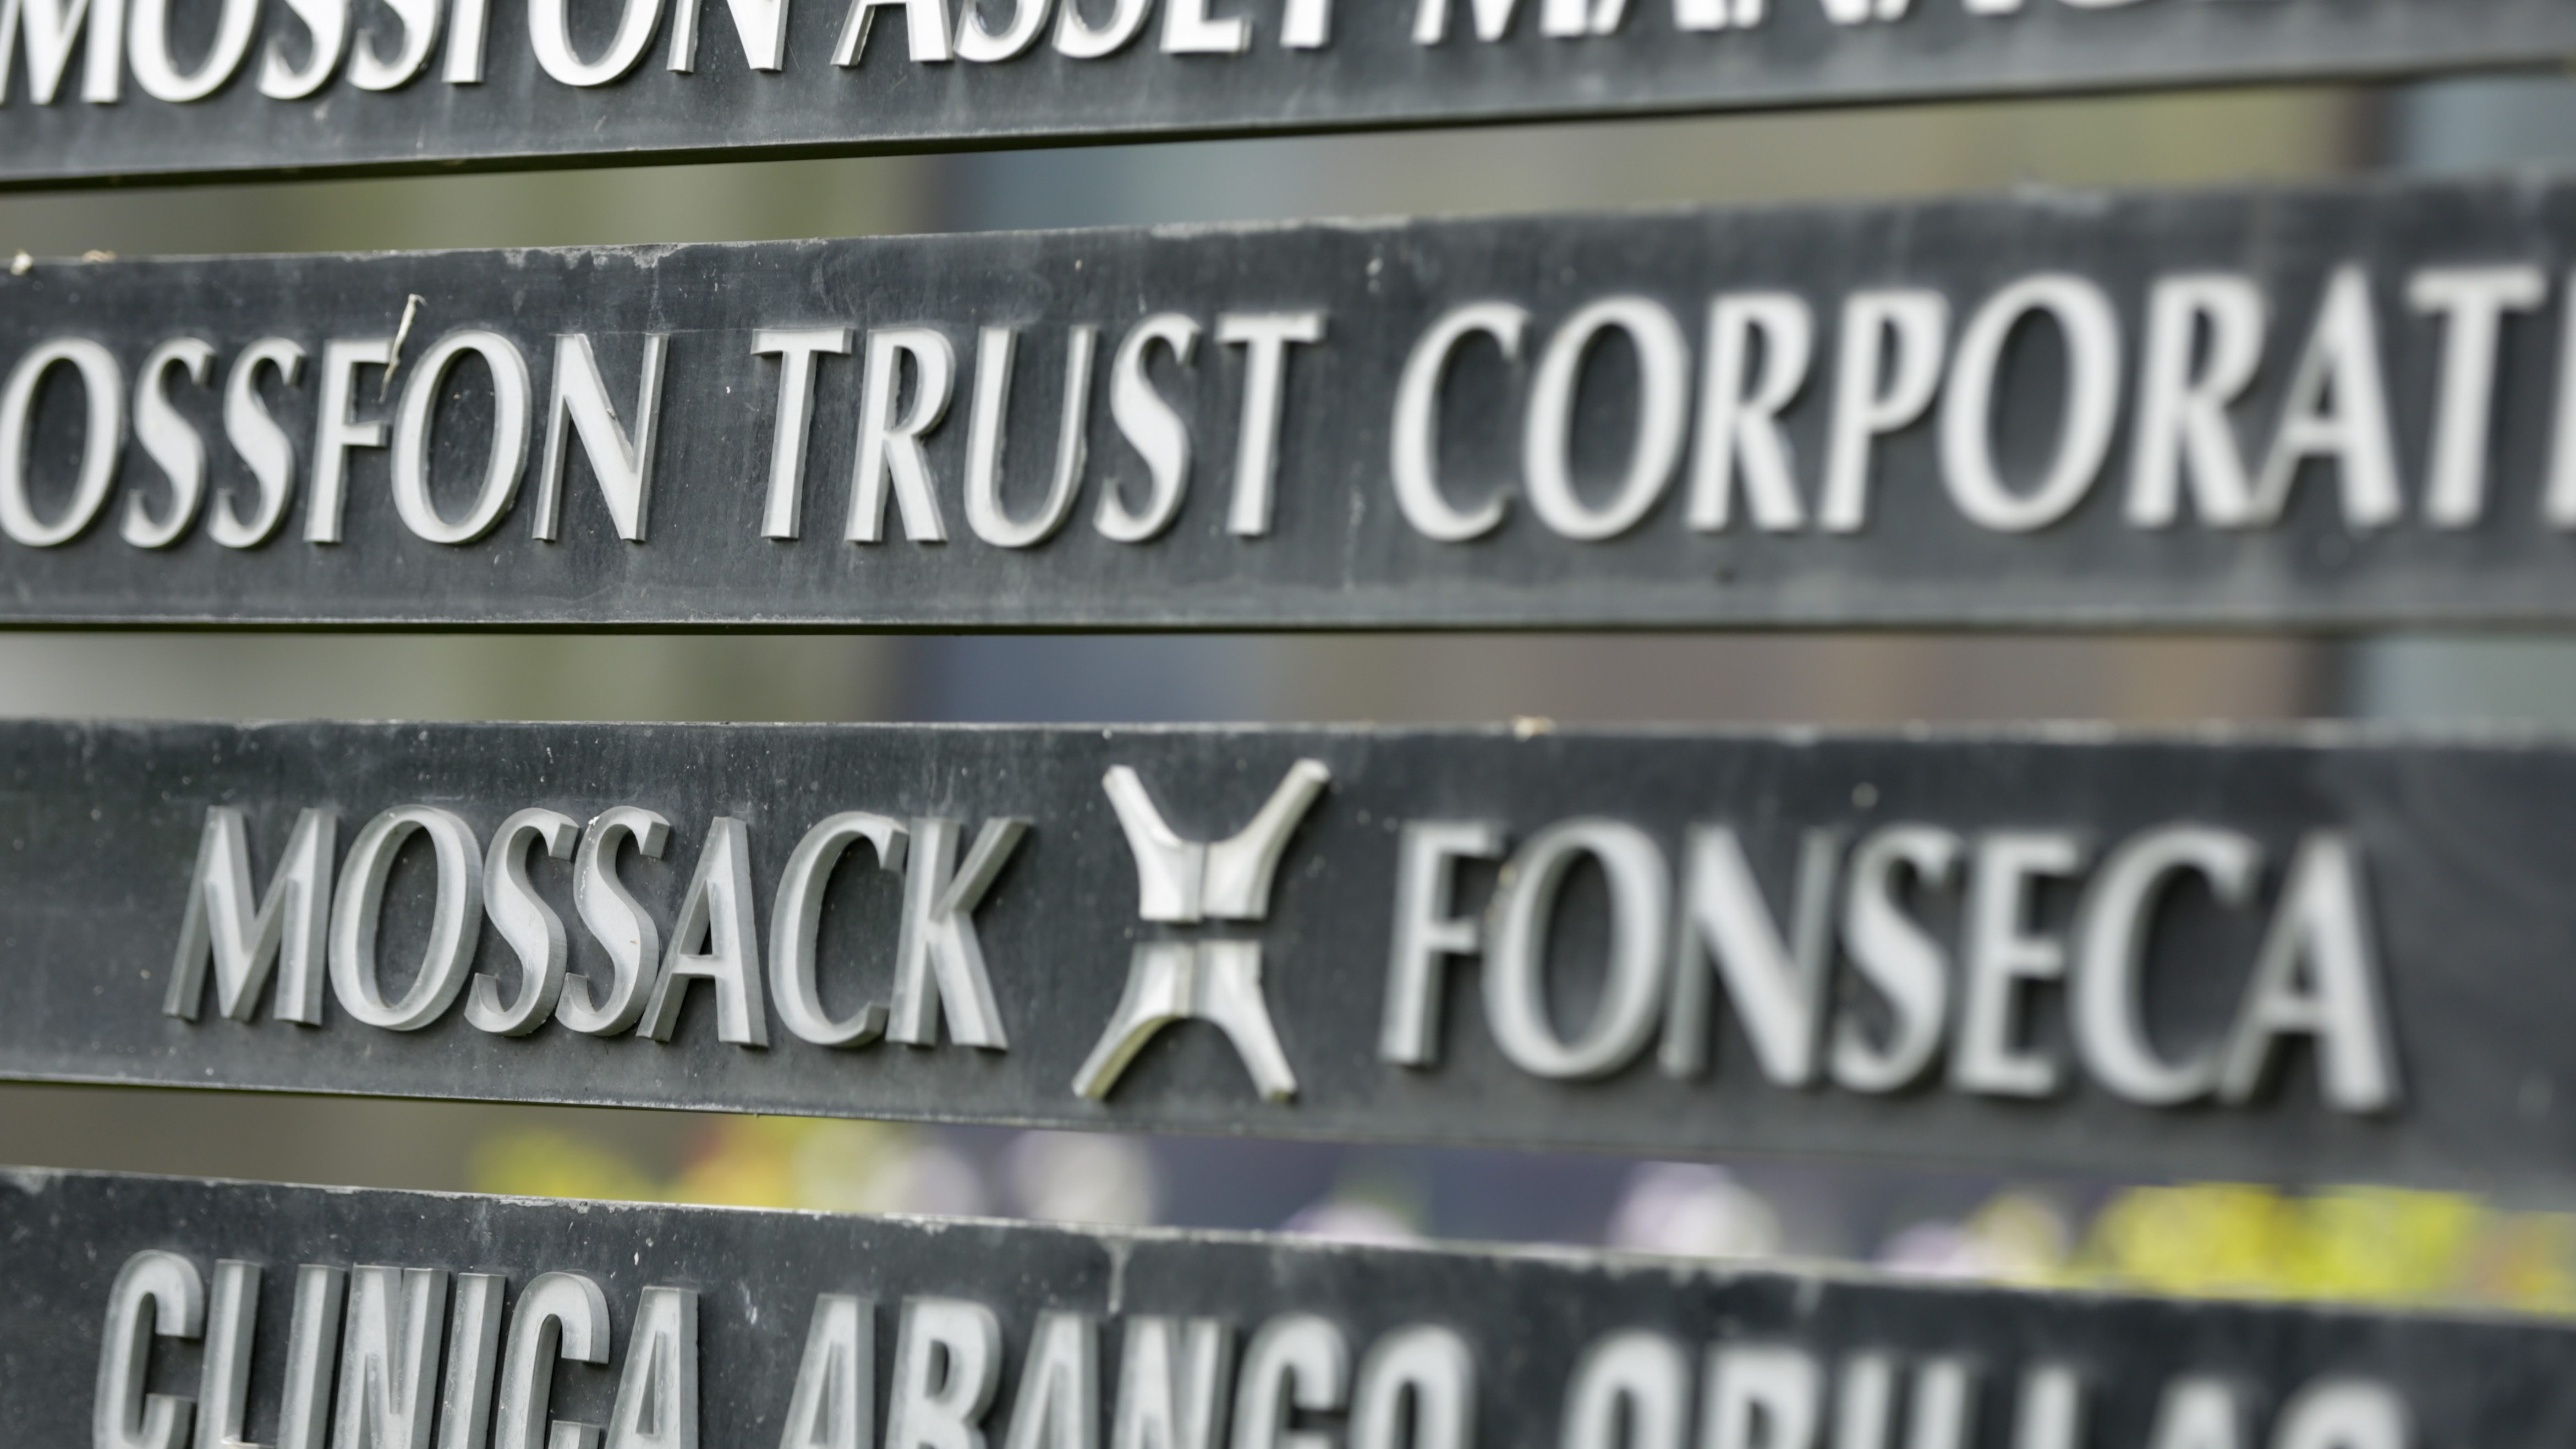 """FILE - In this Monday, April 4, 2016 file photo, a marquee of the Arango Orillac Building lists the Mossack Fonseca law firm, in Panama City. Denmark will buy leaked data from a Panamanian law firm that helped customers open offshore companies to avoid paying taxes, the Scandinavian country's taxation minister said Wednesday, Sept 7, 2016. Karsten Lauritzen said Denmark's tax authorities had received an anonymous offer over the summer to acquire data from the so-called """"Panama Papers"""" that could involve up to 600 people. The ministry said communication with the anonymous source was made via encrypted channels. (AP Photo/Arnulfo Franco, File)"""